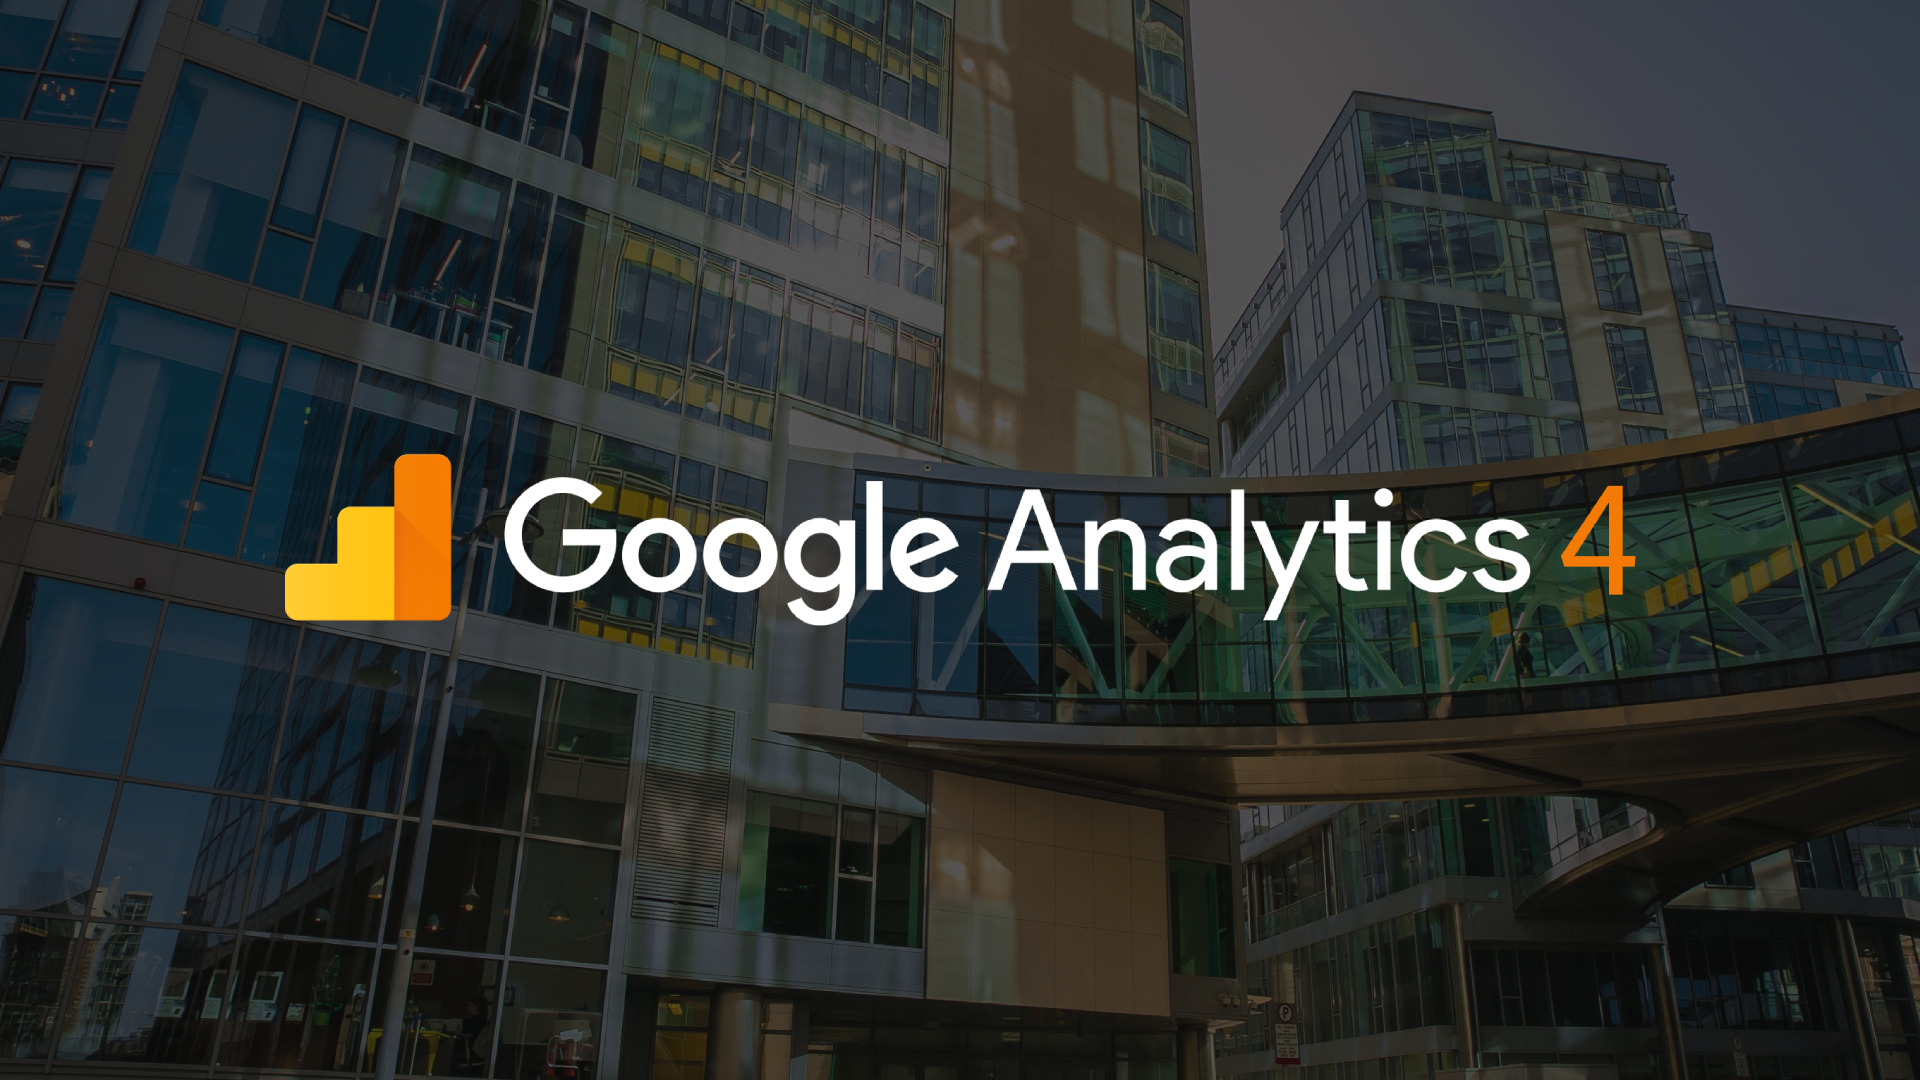 5 Useful Benefits of the Google Analytics 4 Update